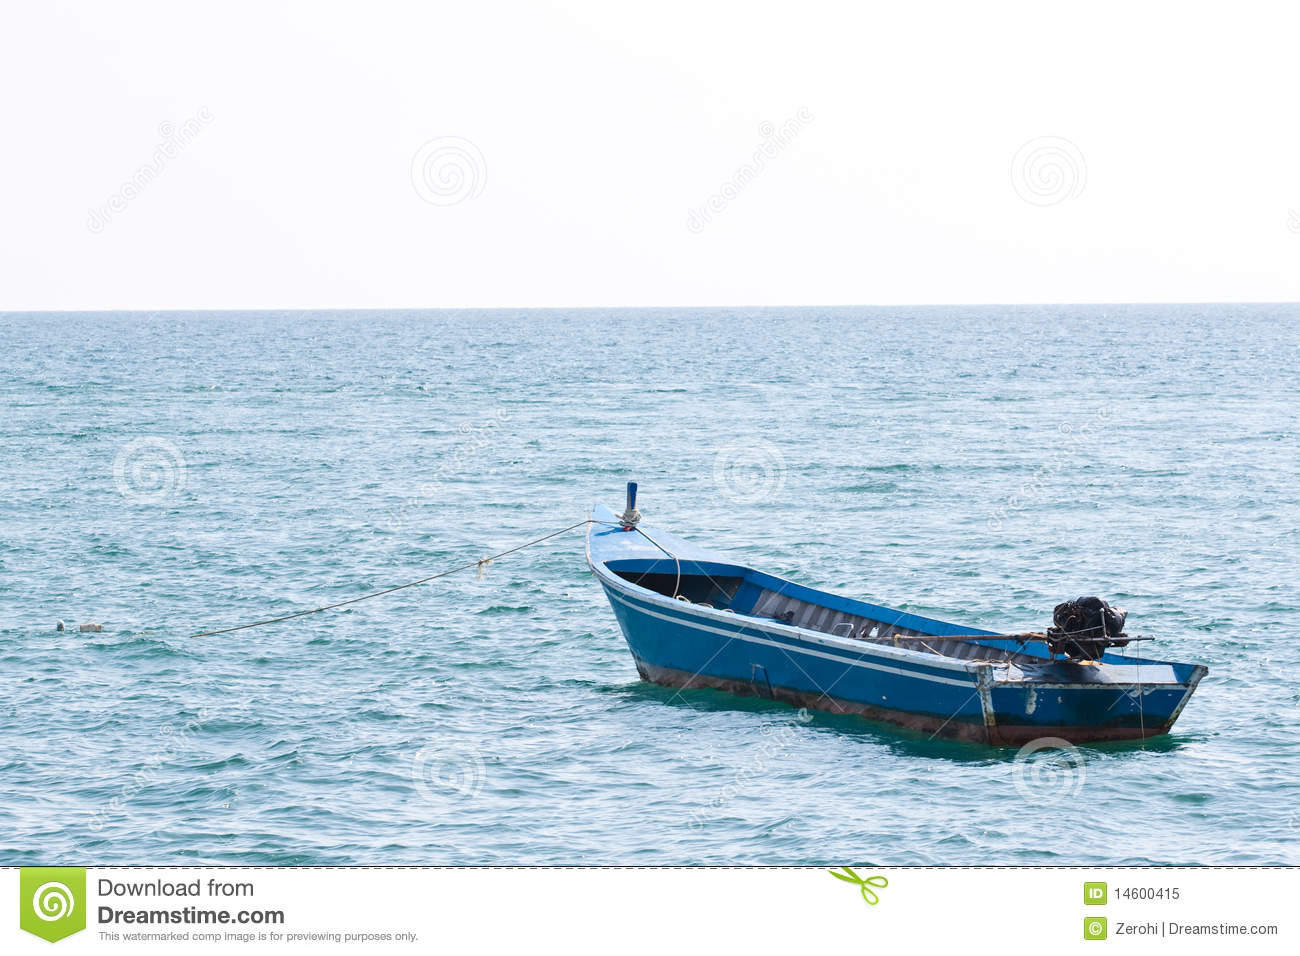 Lonely Boat In The Ocean Royalty Free Stock Photo - Image: 14600415